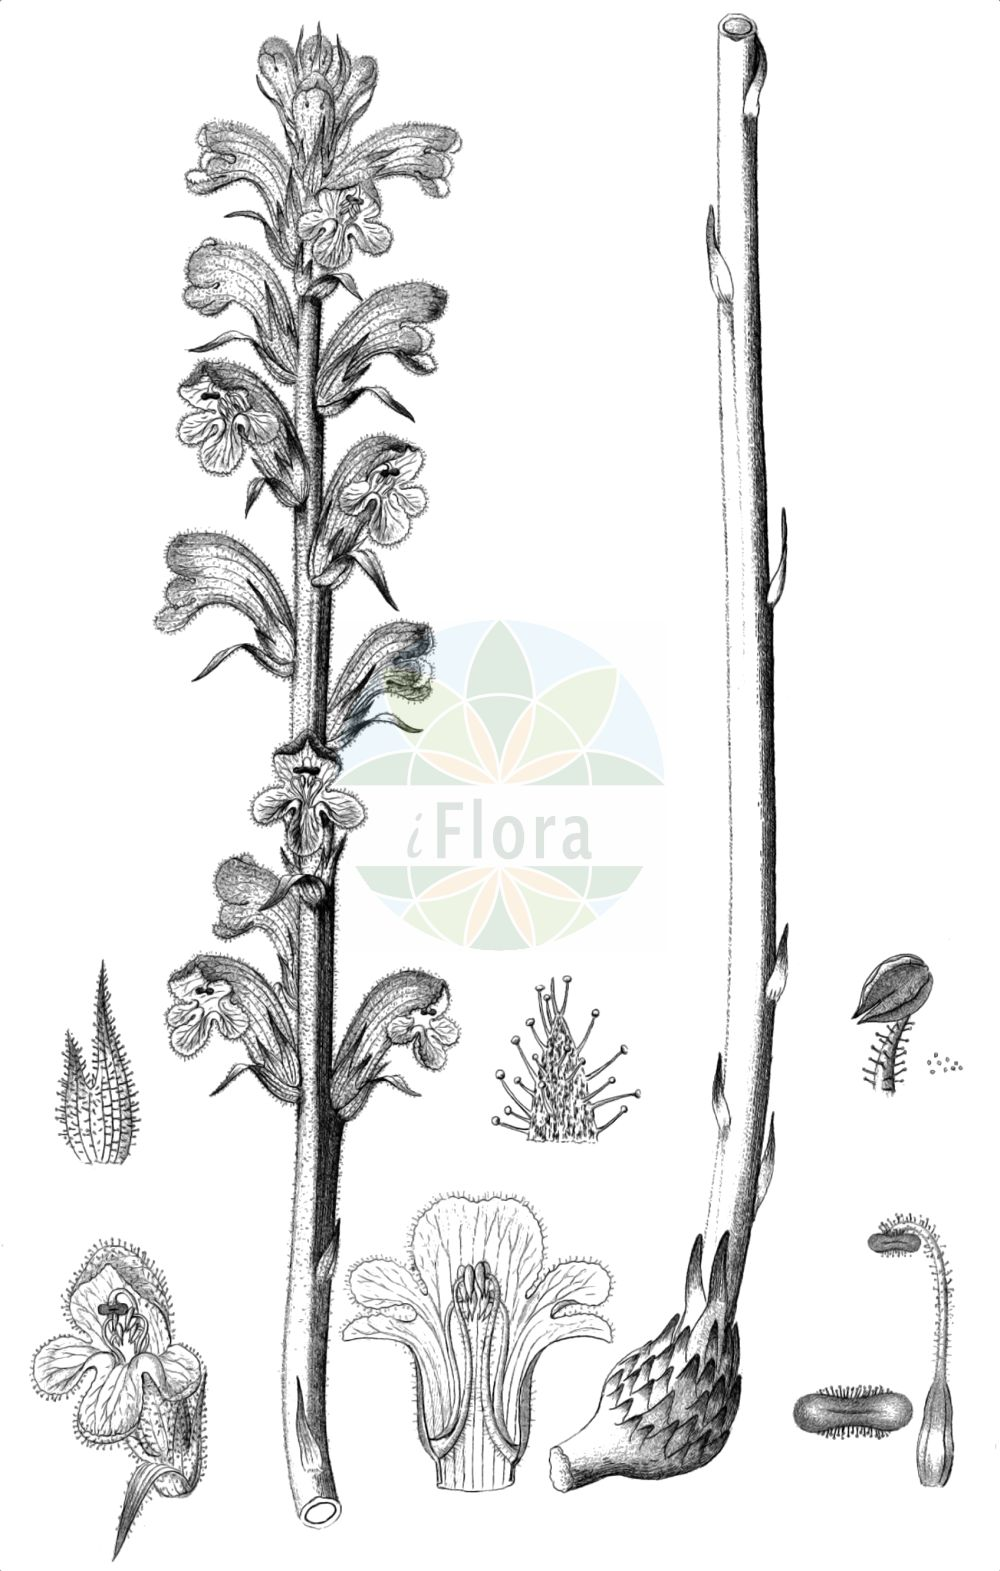 Historische Abbildung von Orobanche caryophyllacea (Nelken-Sommerwurz - Bedstraw Broomrape). Das Bild zeigt Blatt, Bluete, Frucht und Same. ---- Historical Drawing of Orobanche caryophyllacea (Nelken-Sommerwurz - Bedstraw Broomrape).The image is showing leaf, flower, fruit and seed.(Orobanche caryophyllacea,Nelken-Sommerwurz,Bedstraw Broomrape,Orobanche buhsei,Orobanche caryophyllacea,Orobanche clausonis,Orobanche galii,Orobanche hesperina,Orobanche vulgaris,Nelken-Sommerwurz,Gemeine Sommerwurz,Bedstraw Broomrape,Clove-scented Broomrape,Orobanche,Sommerwurz,Broomrape,Orobanchaceae,Sommerwurzgewaechse,Broomrape family,Blatt,Bluete,Frucht,Same,leaf,flower,fruit,seed,Reichenbach (1823-1832))